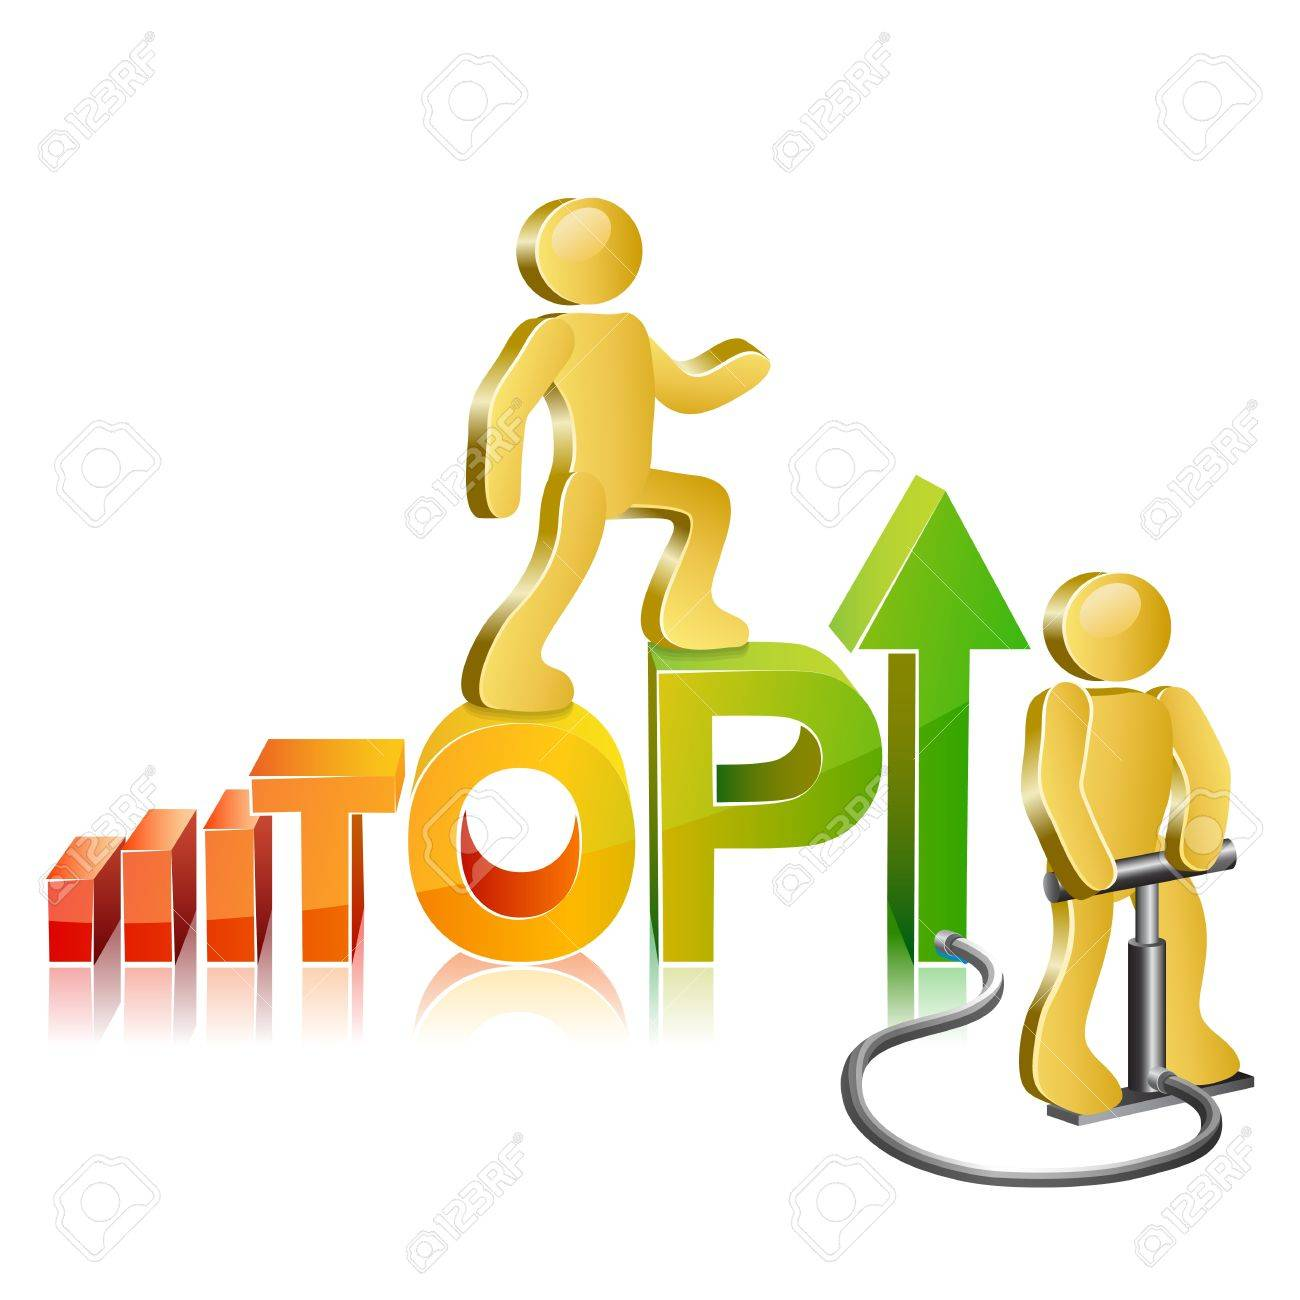 Human walking up on diagram the word top stylized as diagram human walking up on diagram the word top stylized as diagram to the pinnacle of success ccuart Gallery